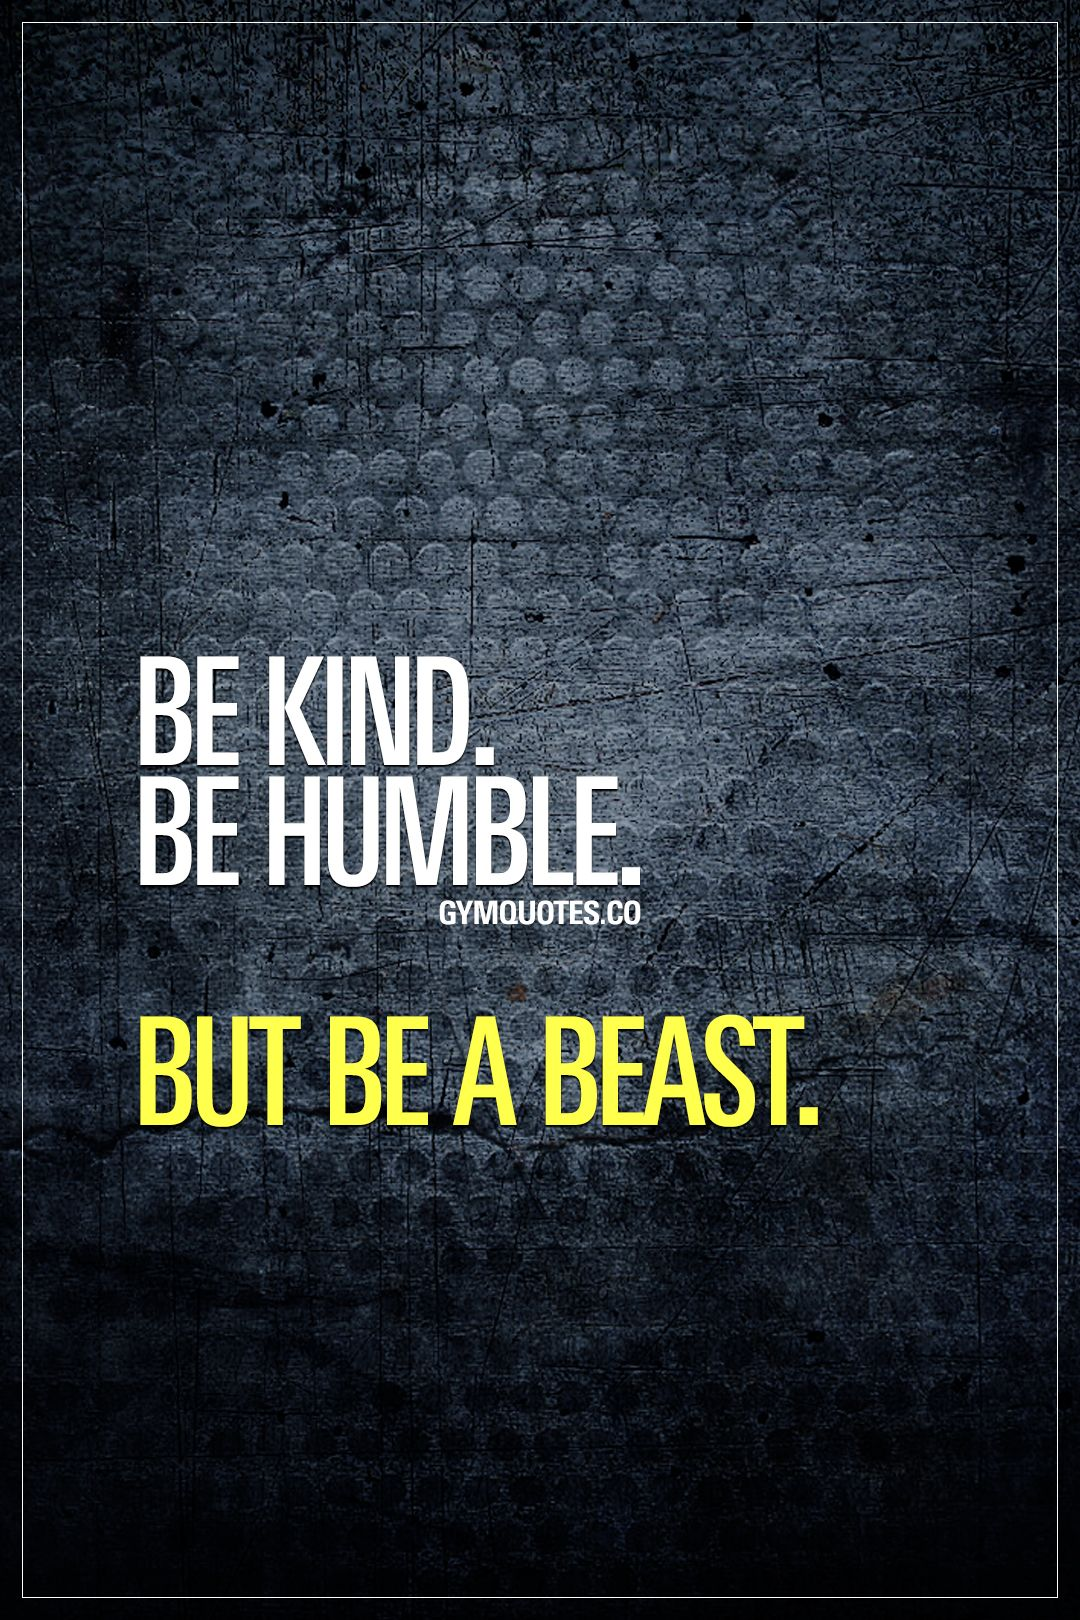 Be kind. Be humble. But be a beast. Everyone should be kind ...